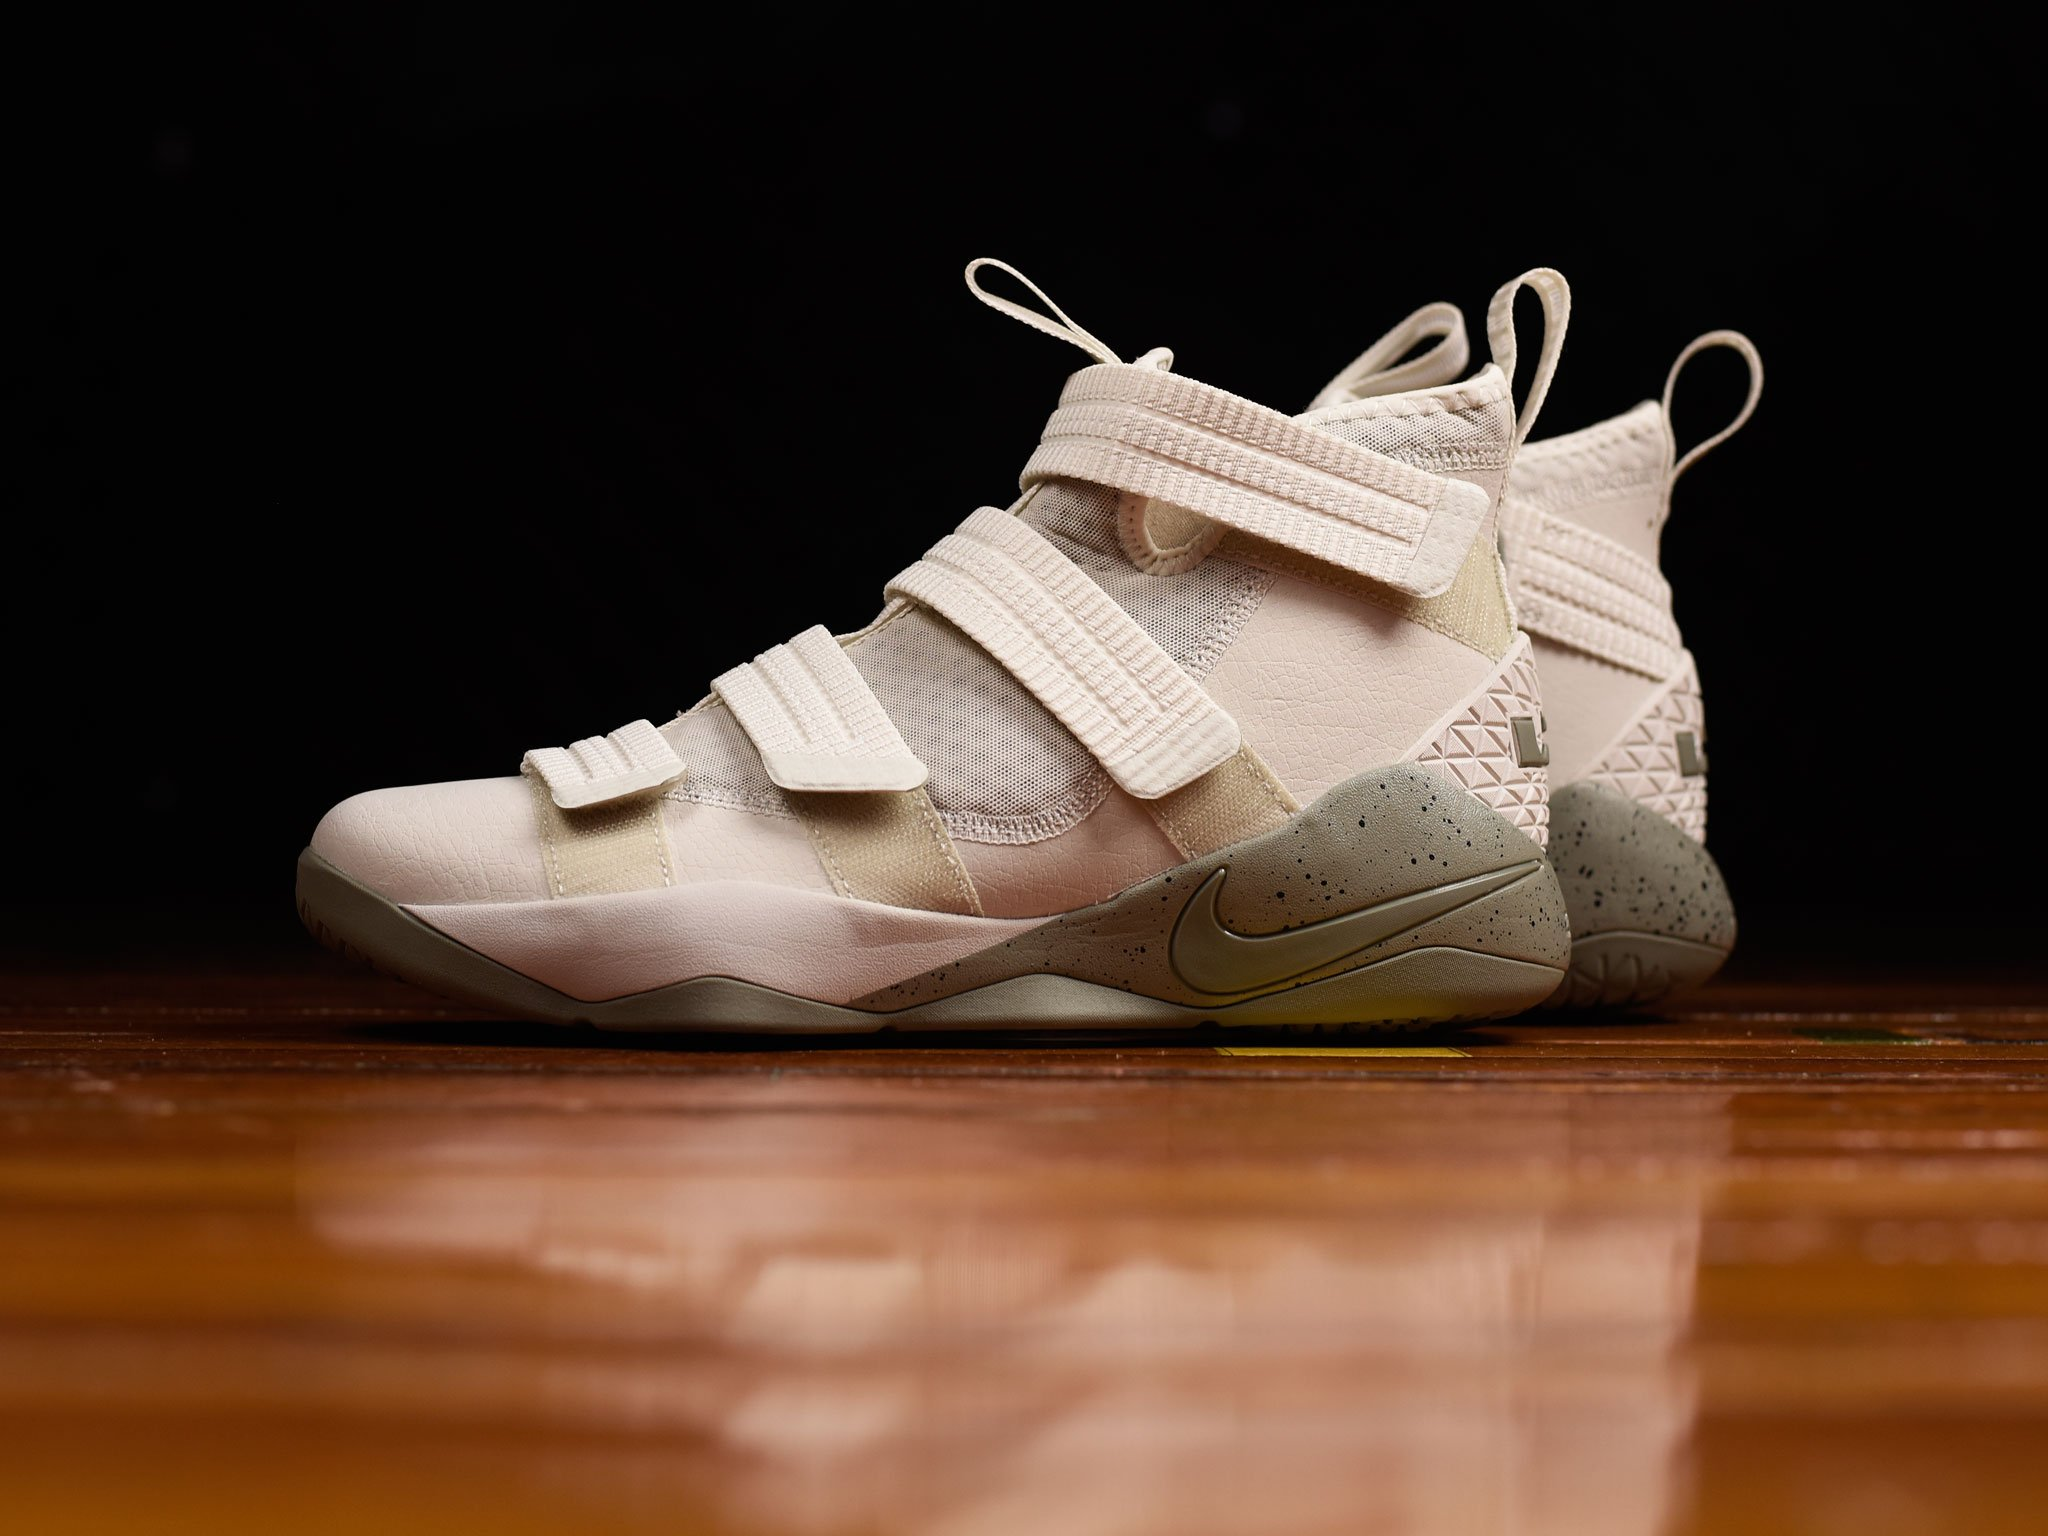 necesidad Subproducto Porra  The LeBron Soldier 11 SFG Gets a Leather Upgrade - WearTesters